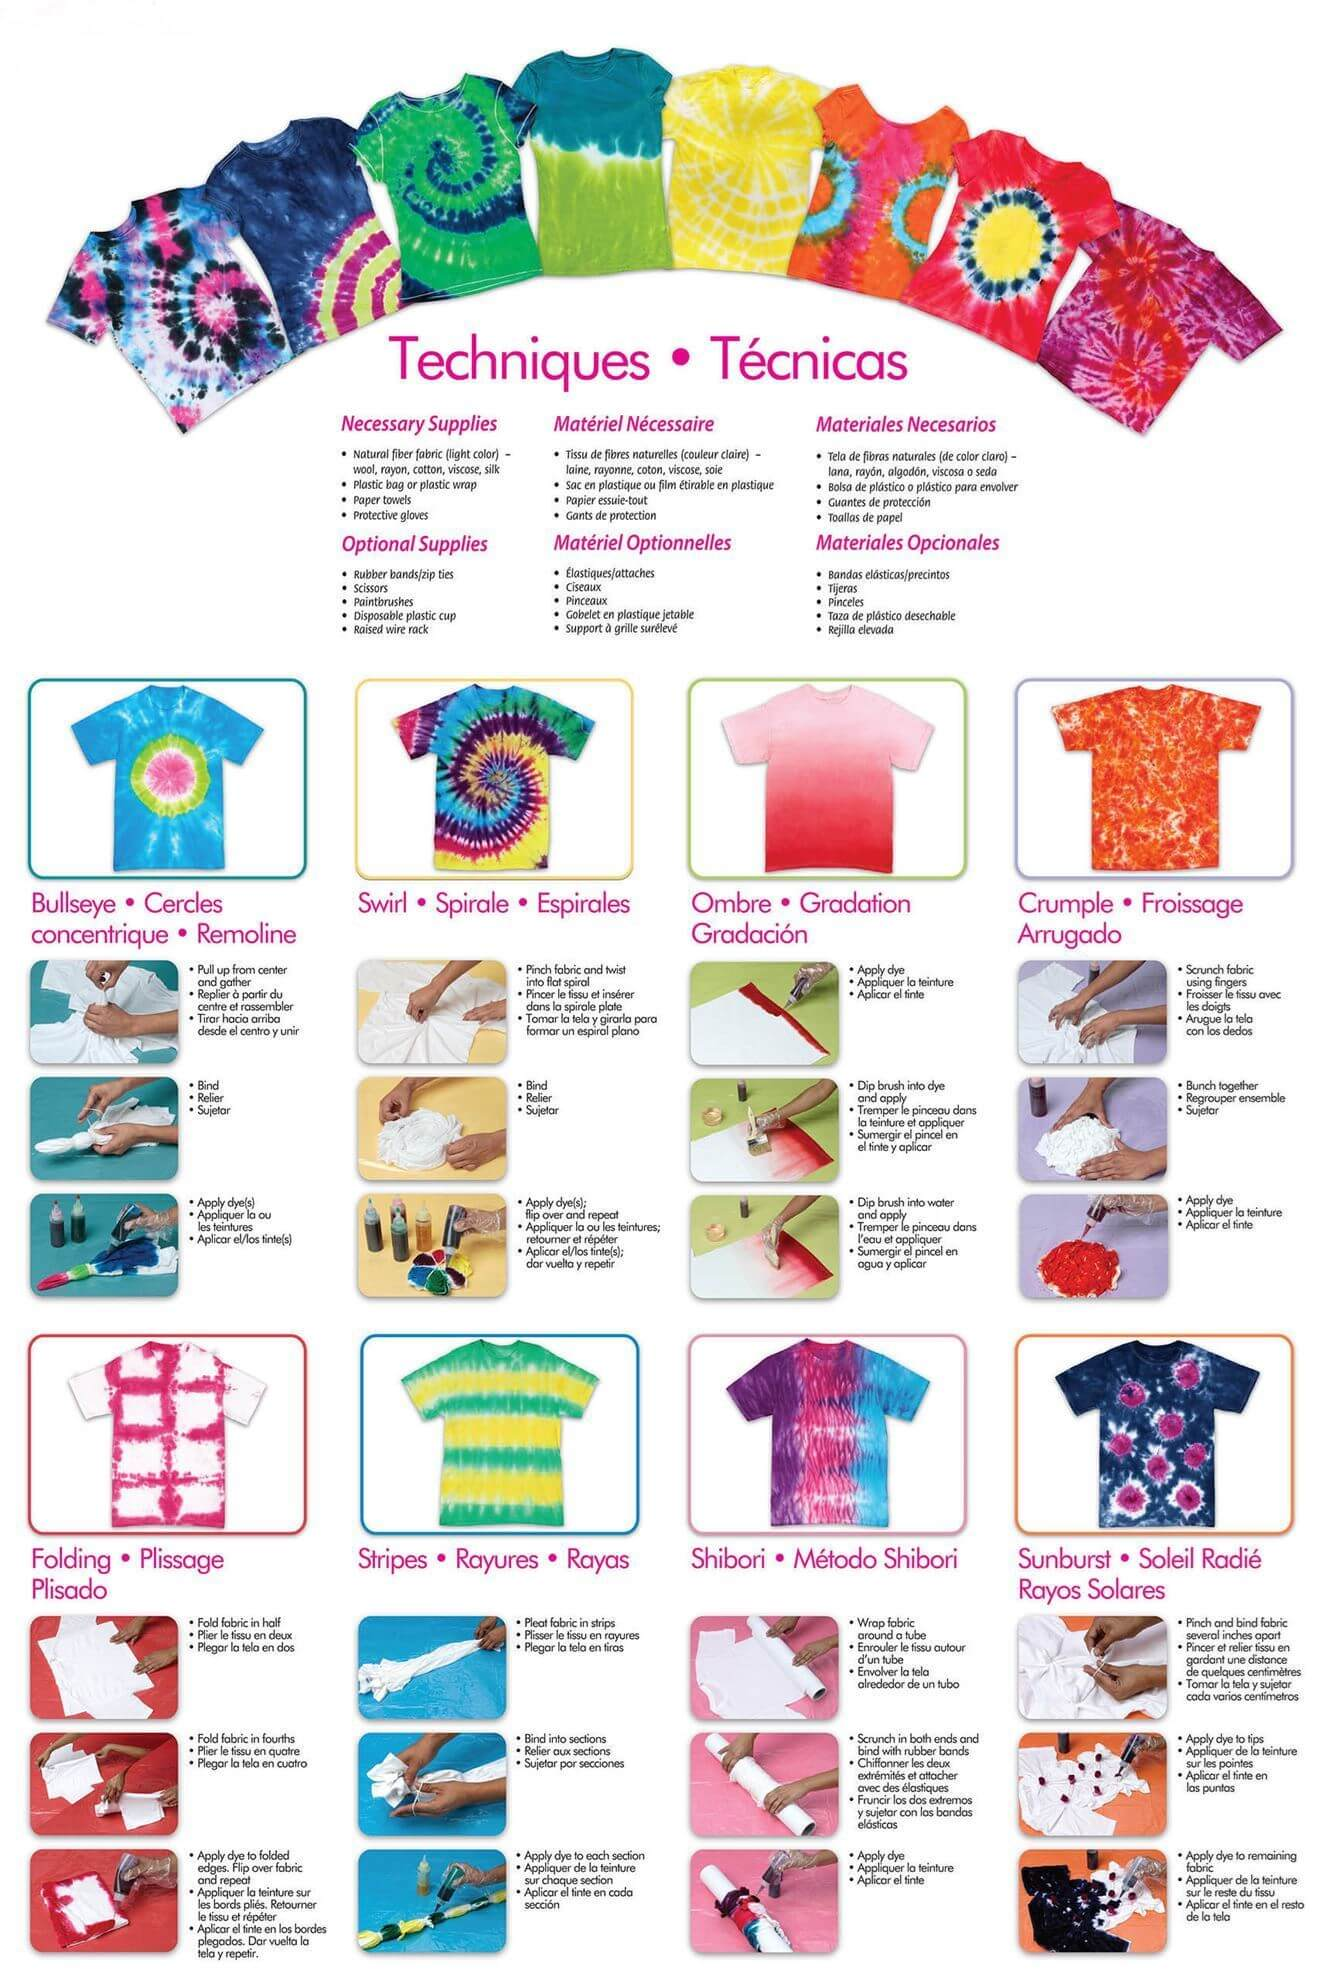 Bright 3-Color Tie-Dye Kit Instructions